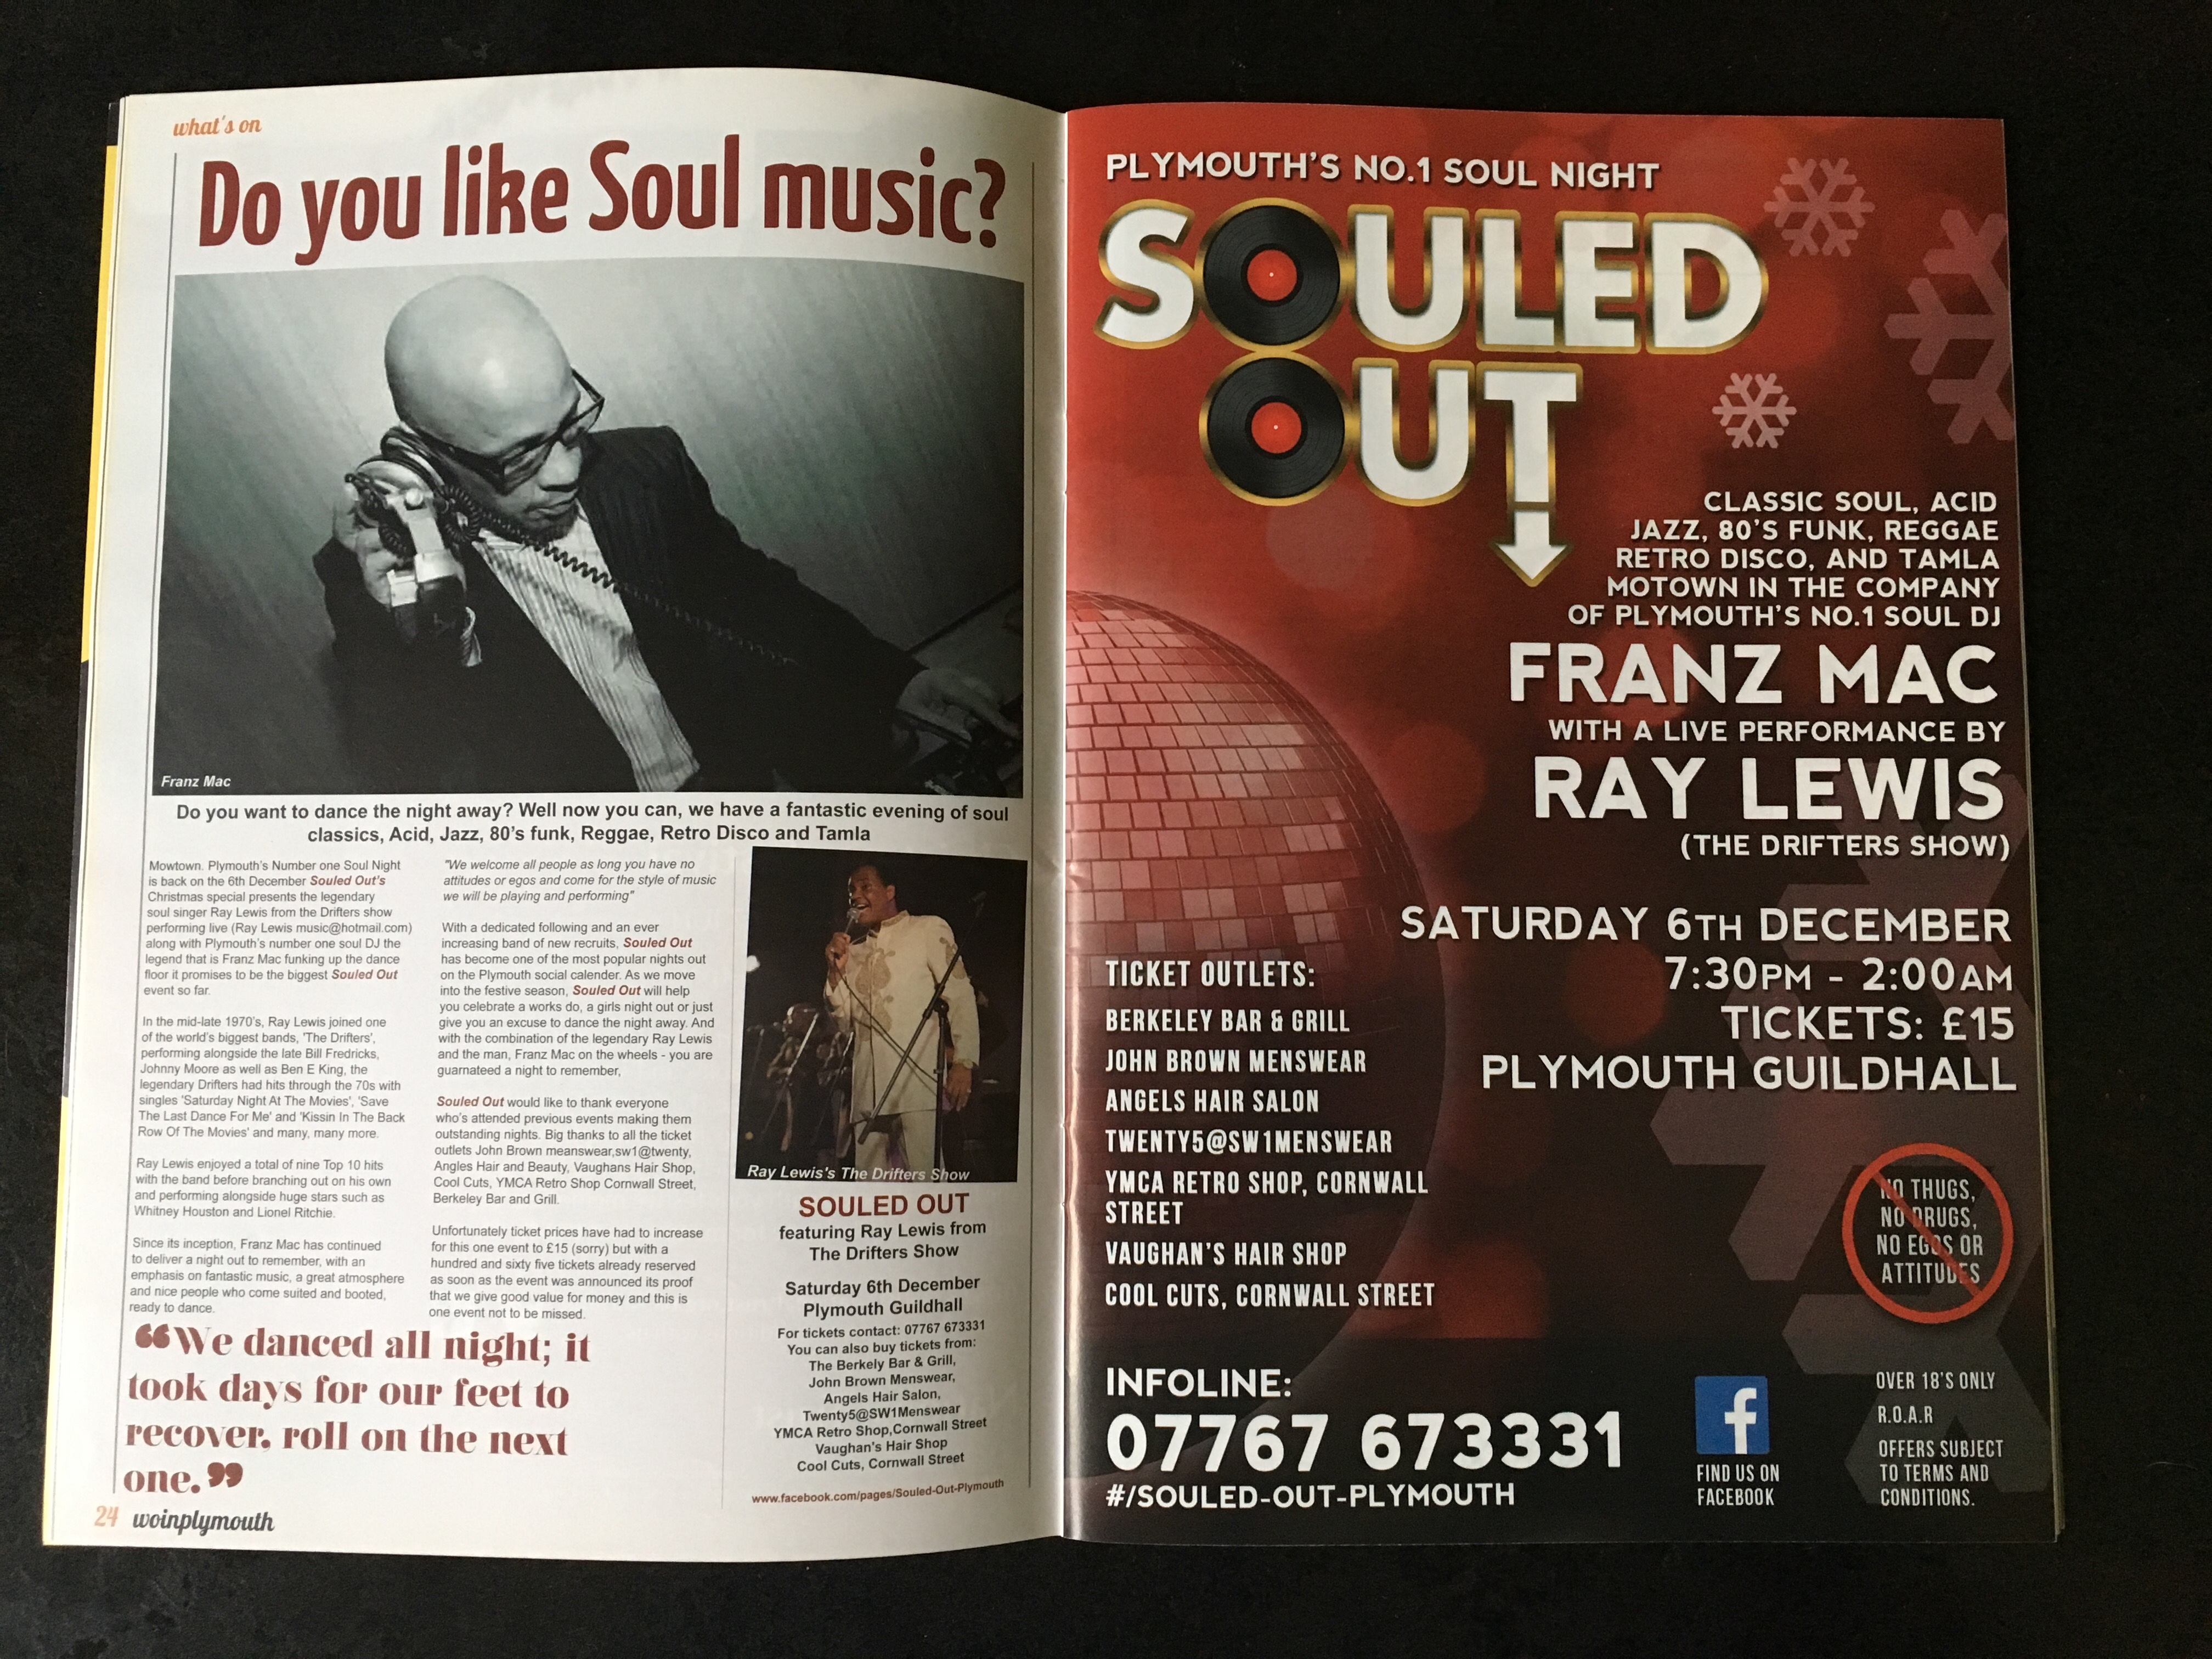 Souled Out Christmas music flyer featured in the Nov/Dec 2014 edition of What's On In Plymouth magazine